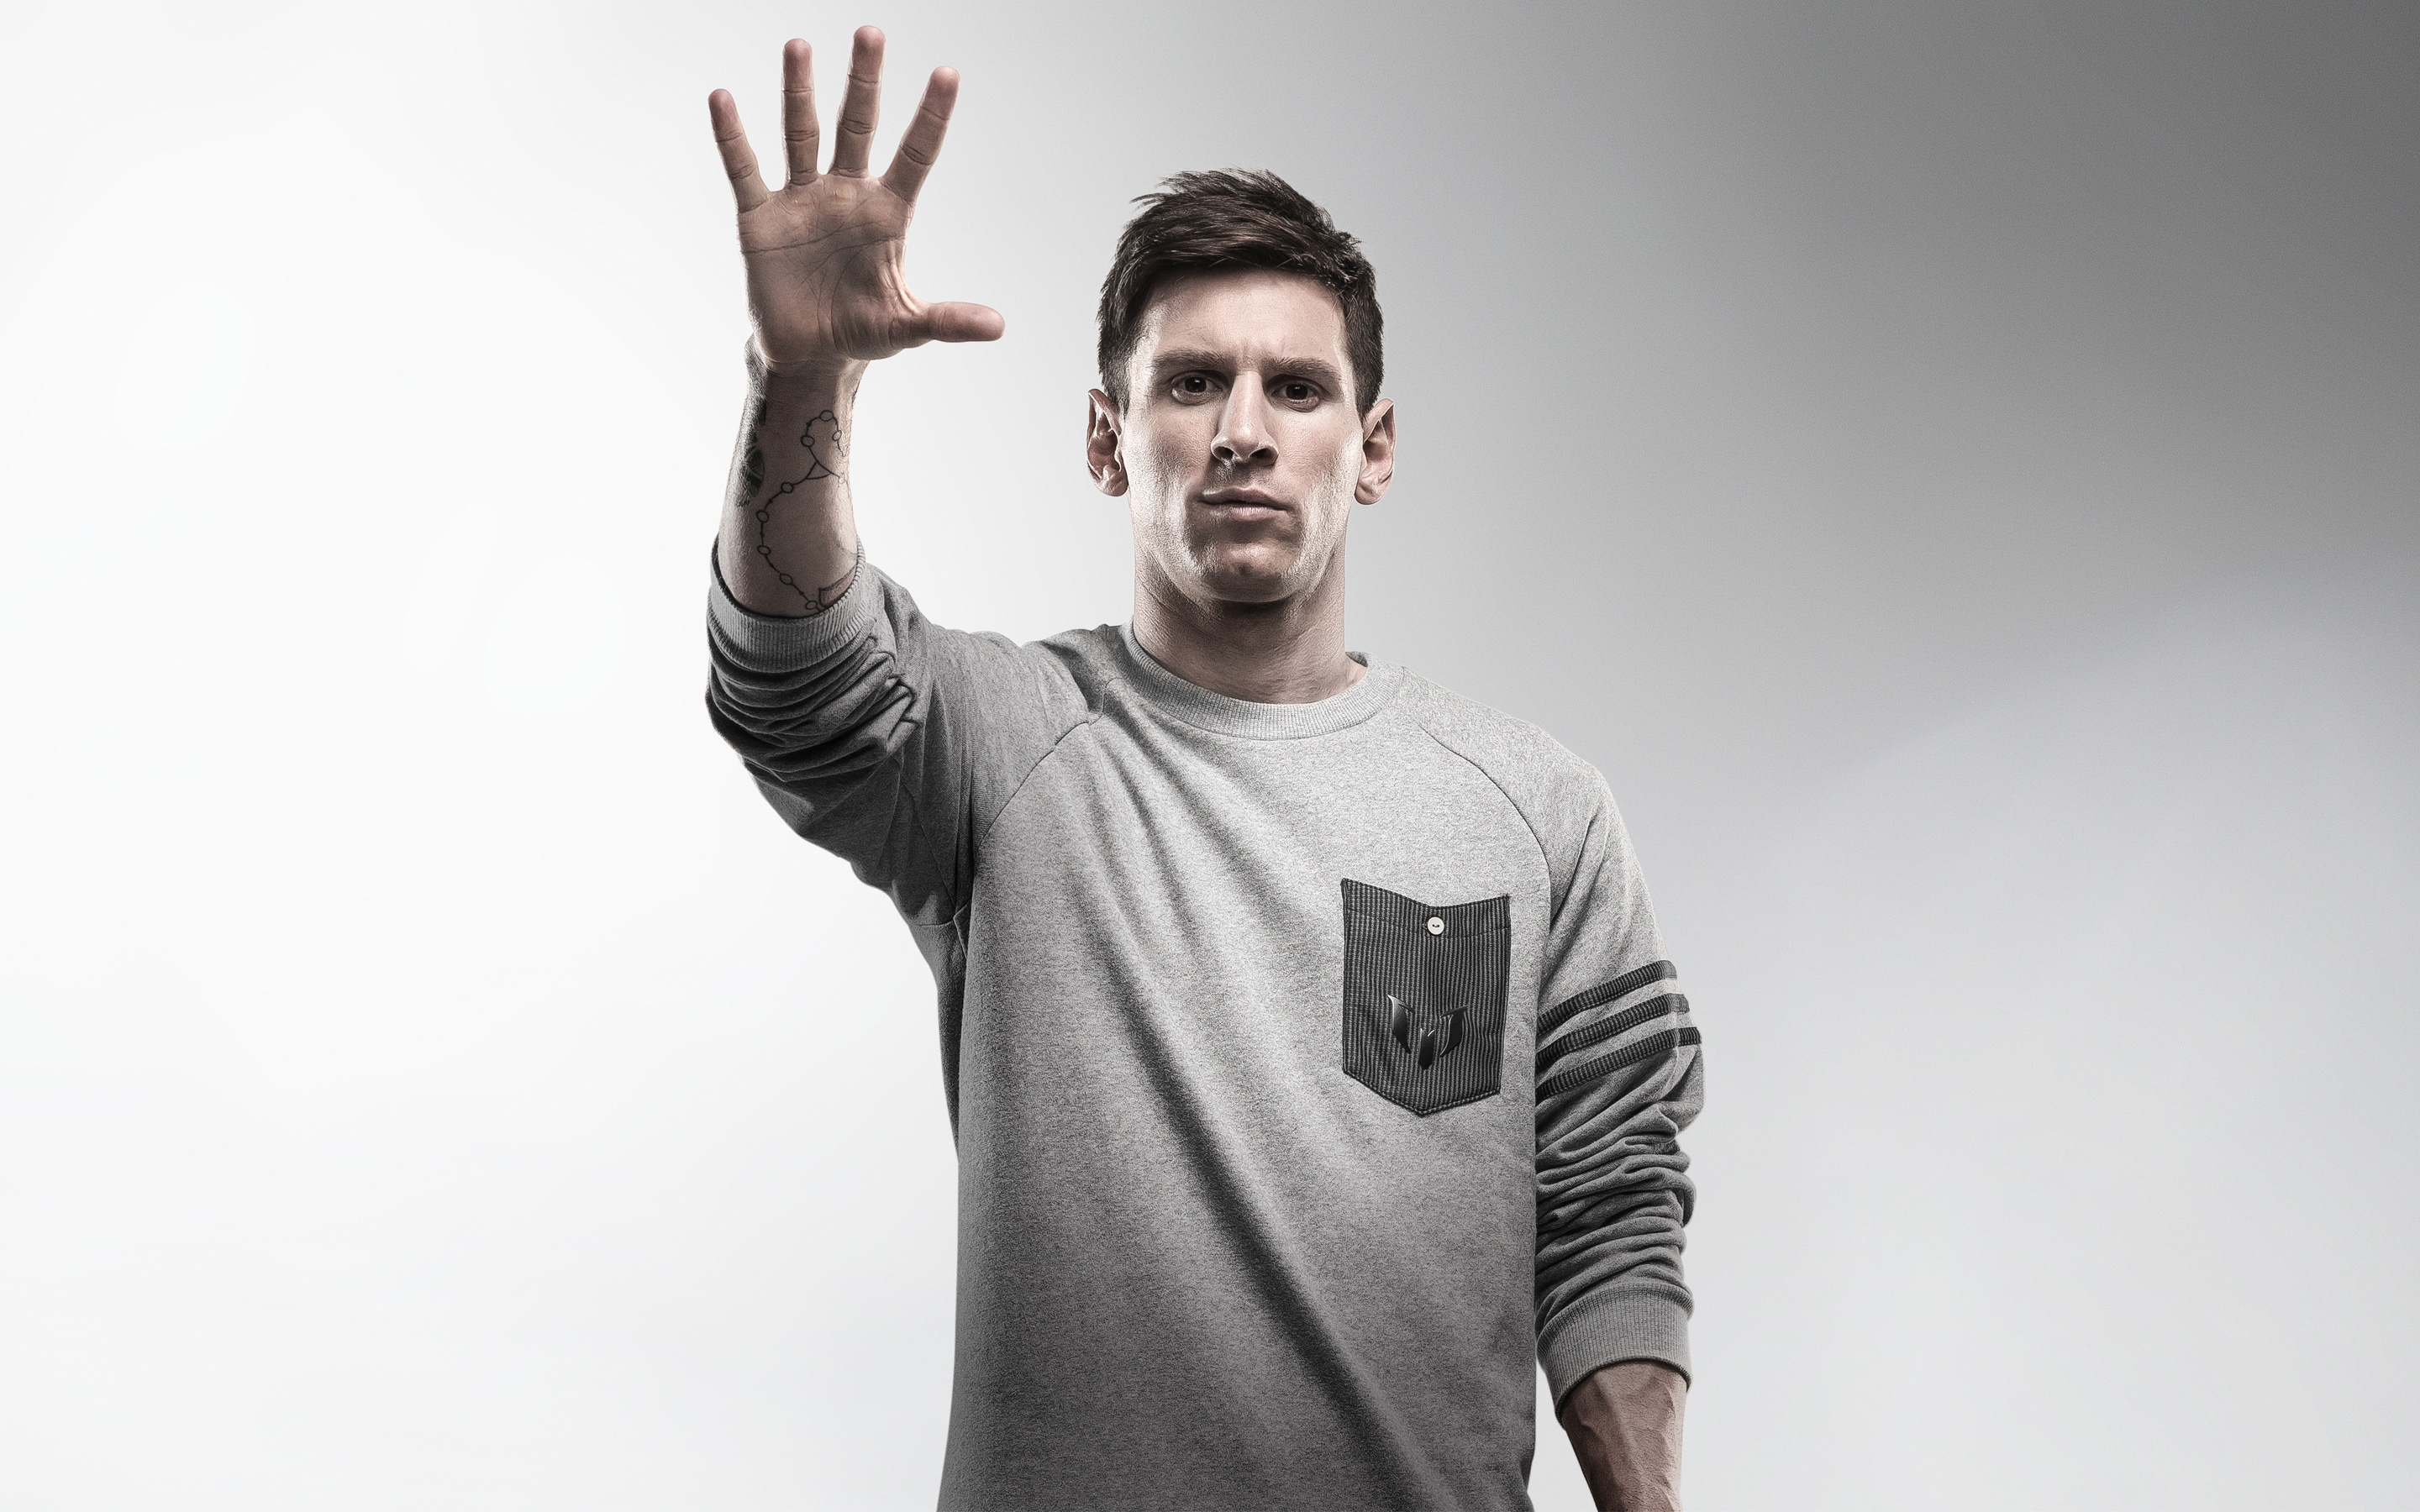 Messi Spanish club Barcelona1830316287 - Messi Spanish club Barcelona - Spanish, Messi, Fottball, Club, Barcelona